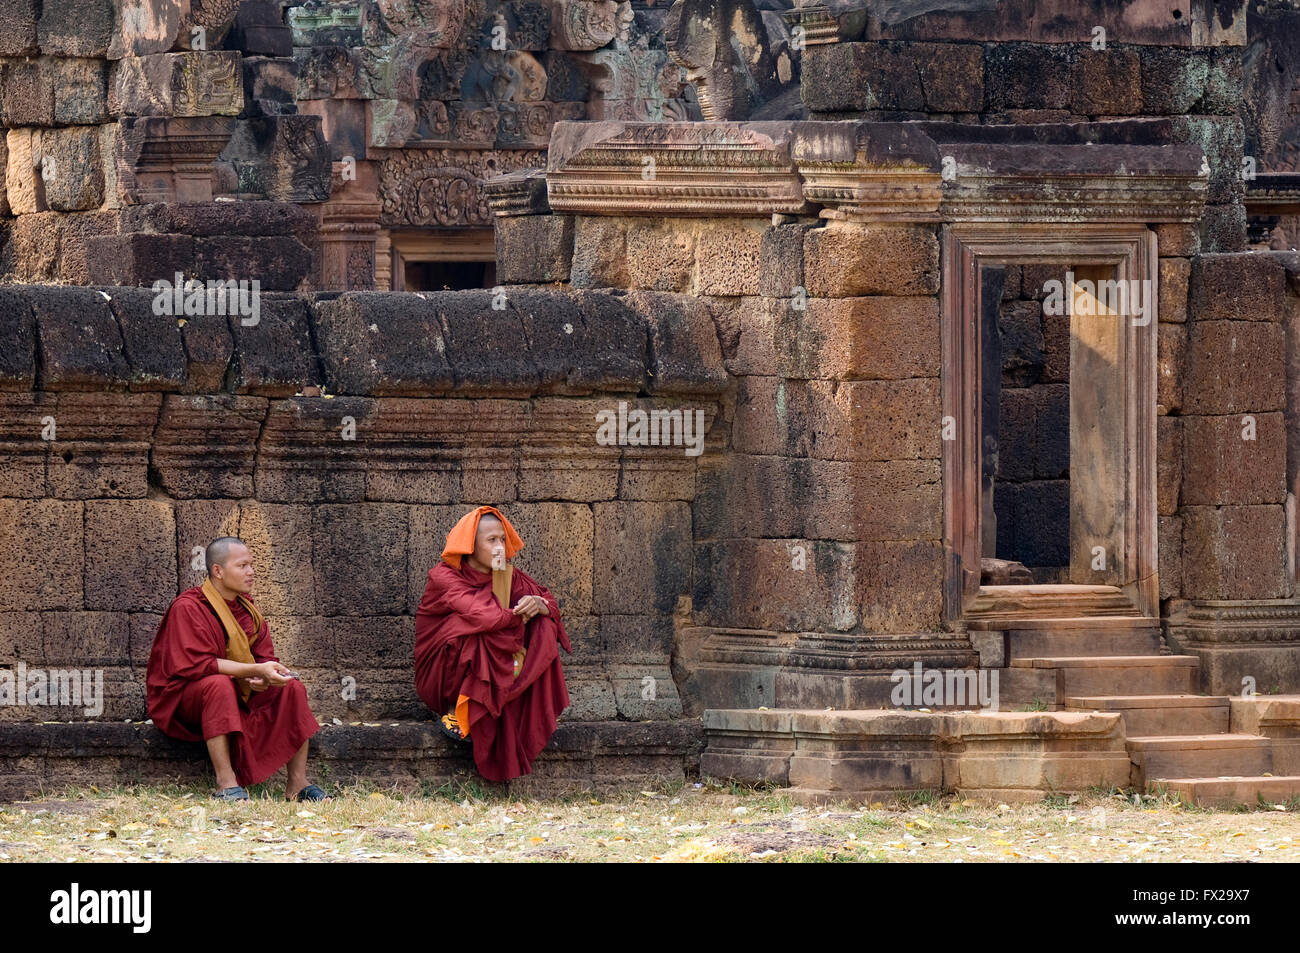 Monks in front of the Banteay Prei Temple, Angkor, Siem Reap, Cambodia, UNESCO World Heritage Site - Stock Image